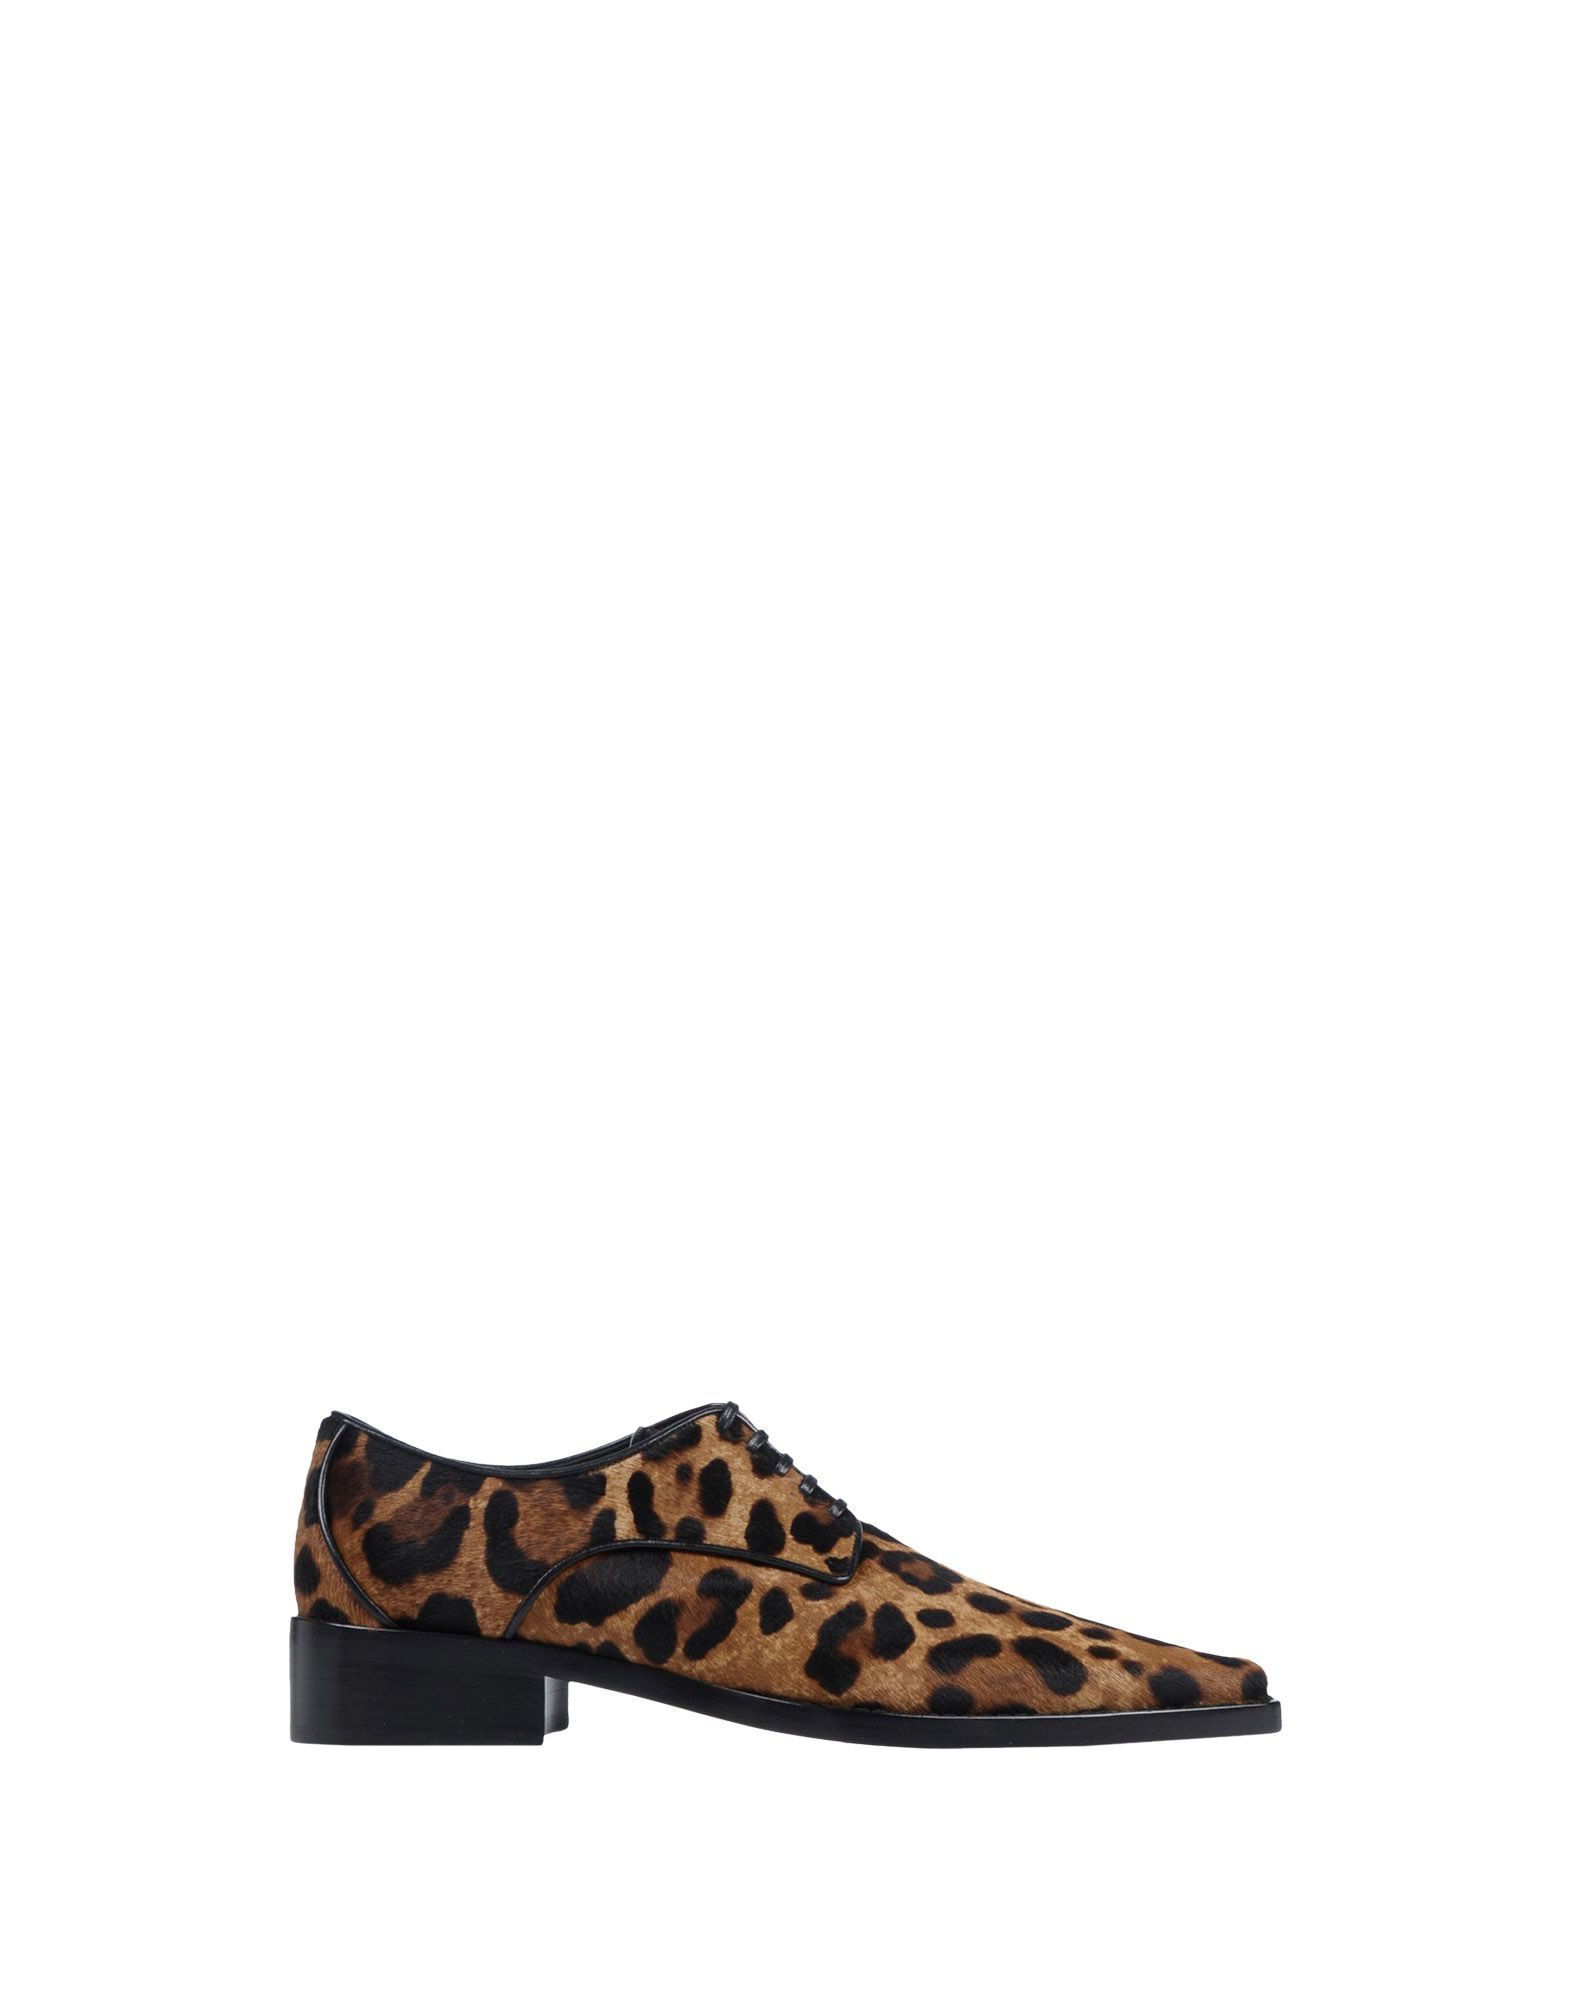 Dolce & Gabbana Leopard Print Calf Leather Lace Up Shoes